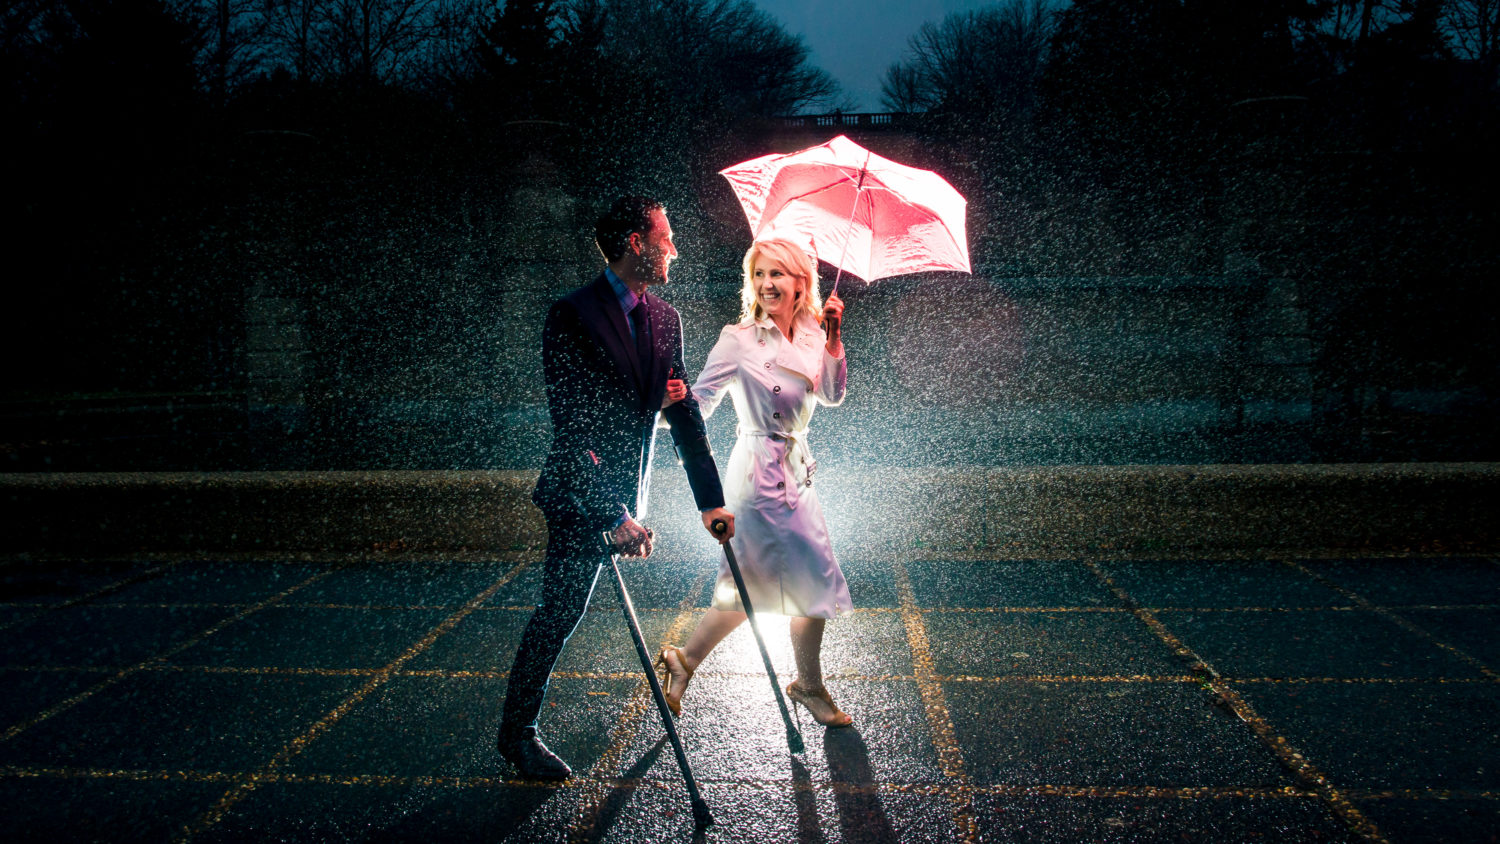 Josh + Ashley's Engagement Shoot in the Rain in DC